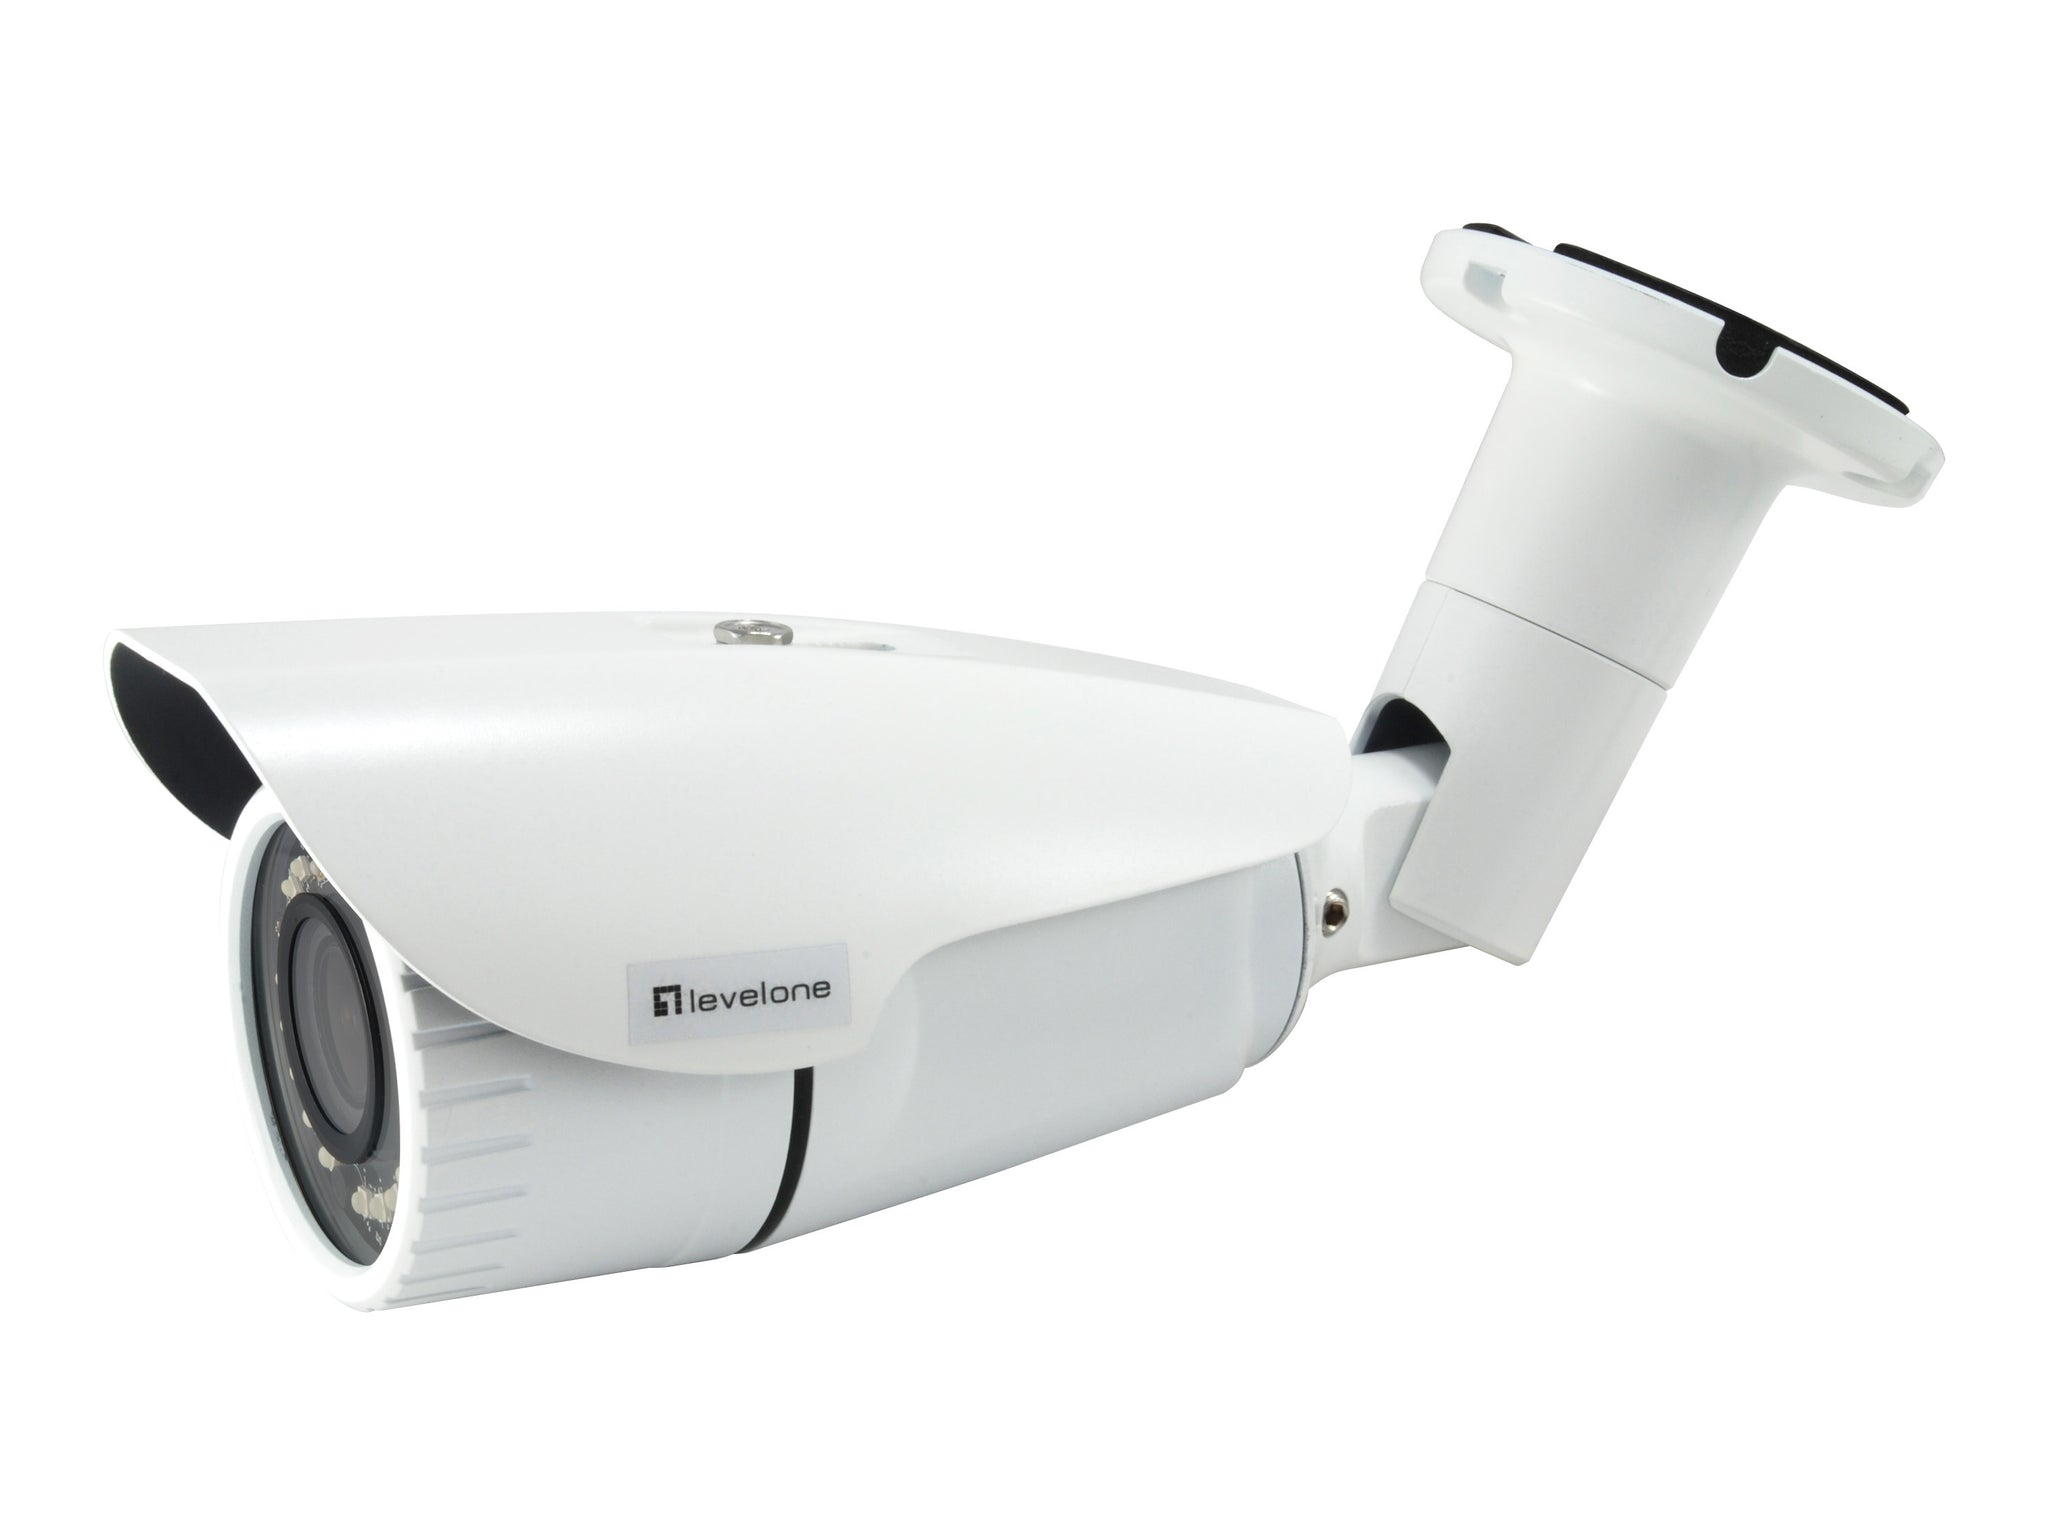 FCS-5102 Fixed IP, 3MP, H.265/264, 4.3X Optical Zoom, 802.3af PoE, IR LEDs, Indoor/Outdoor, Vandalproof, two-way audio